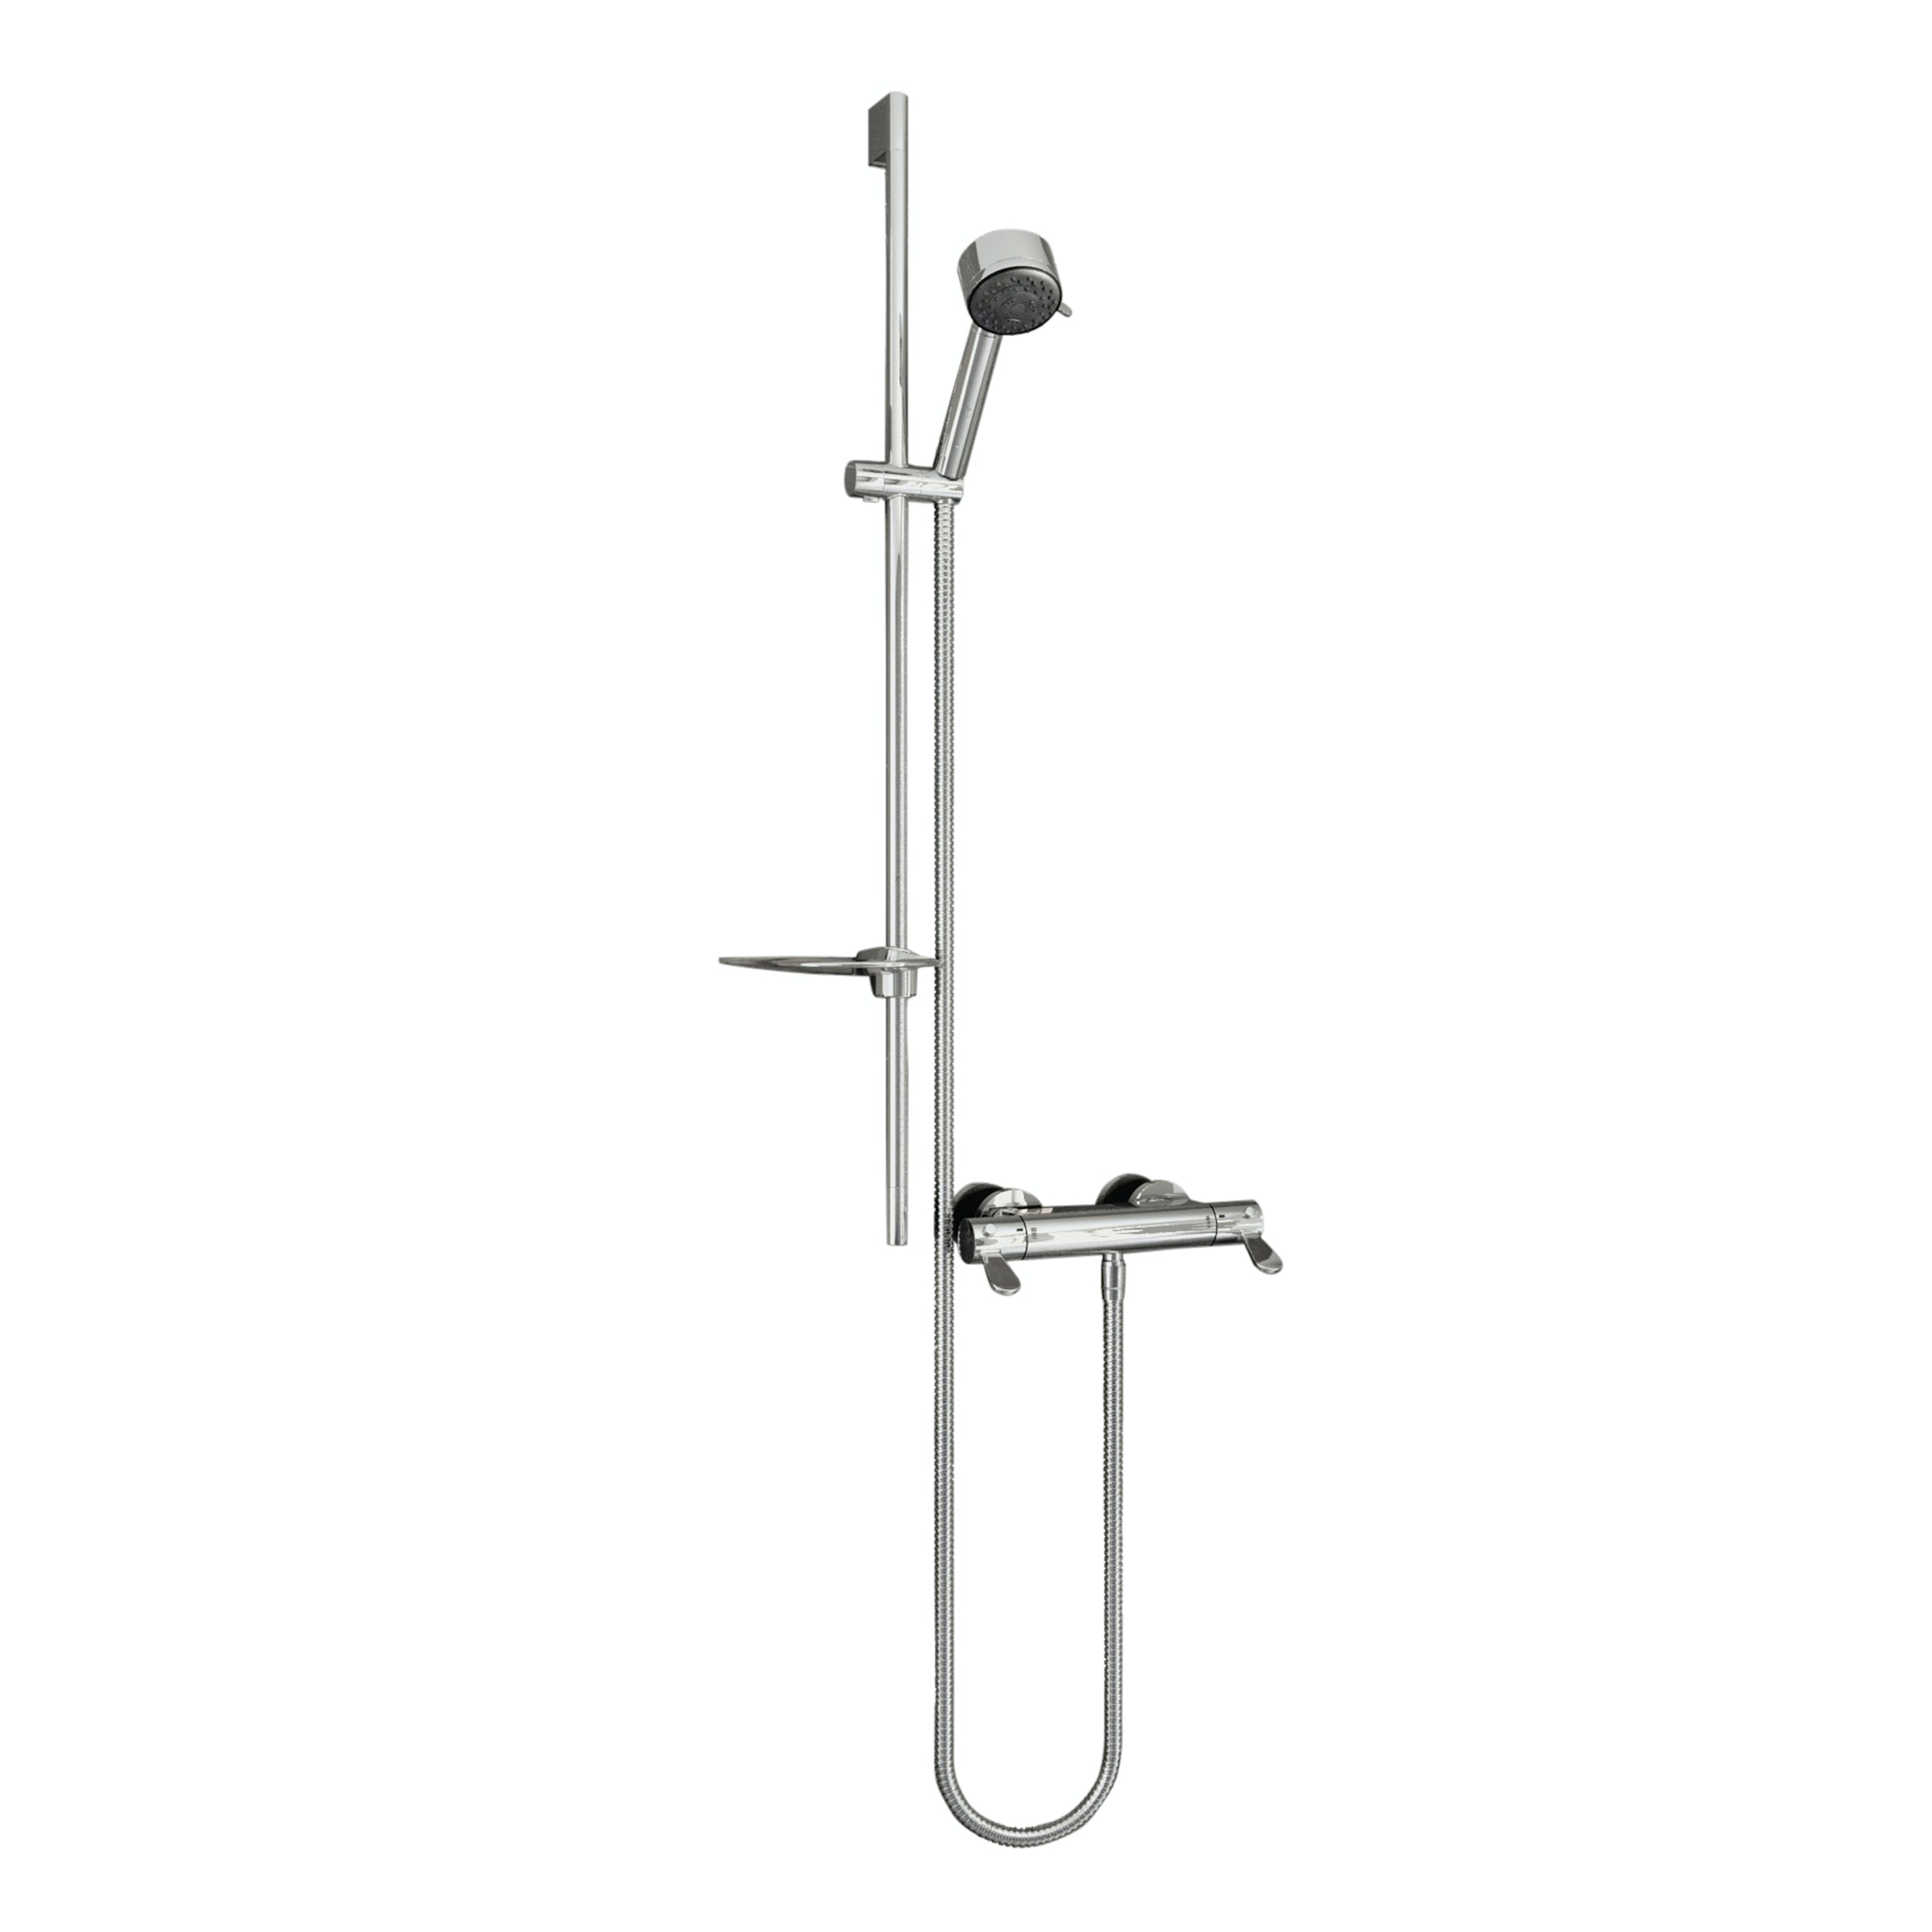 AKW Arka thermostatic mixer shower set